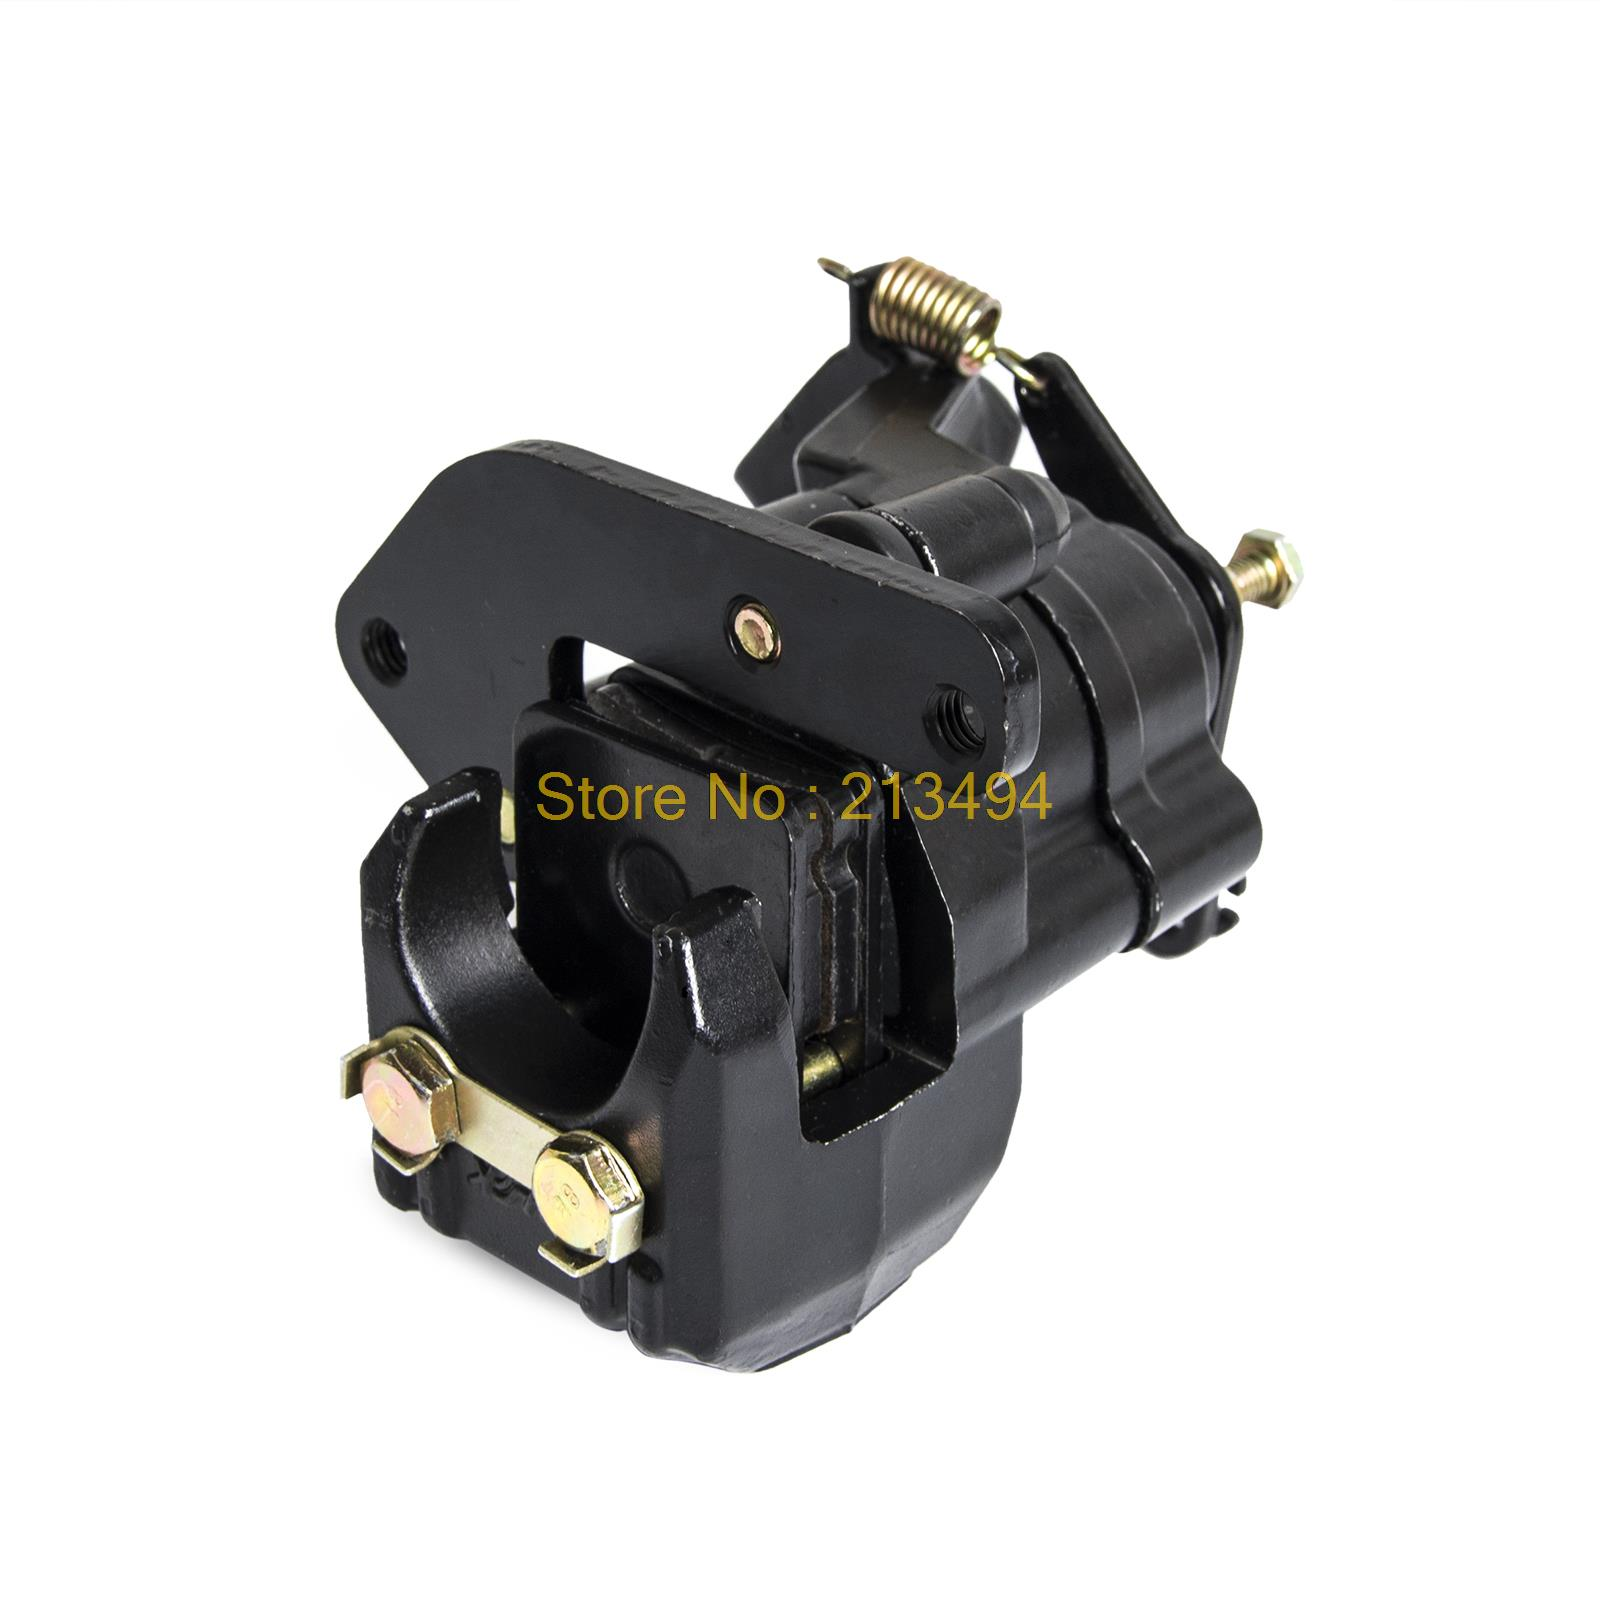 Фотография Rear Brake Caliper Assey For Suzuki LT250 Quadsport 250 LT 250S 1989 1990